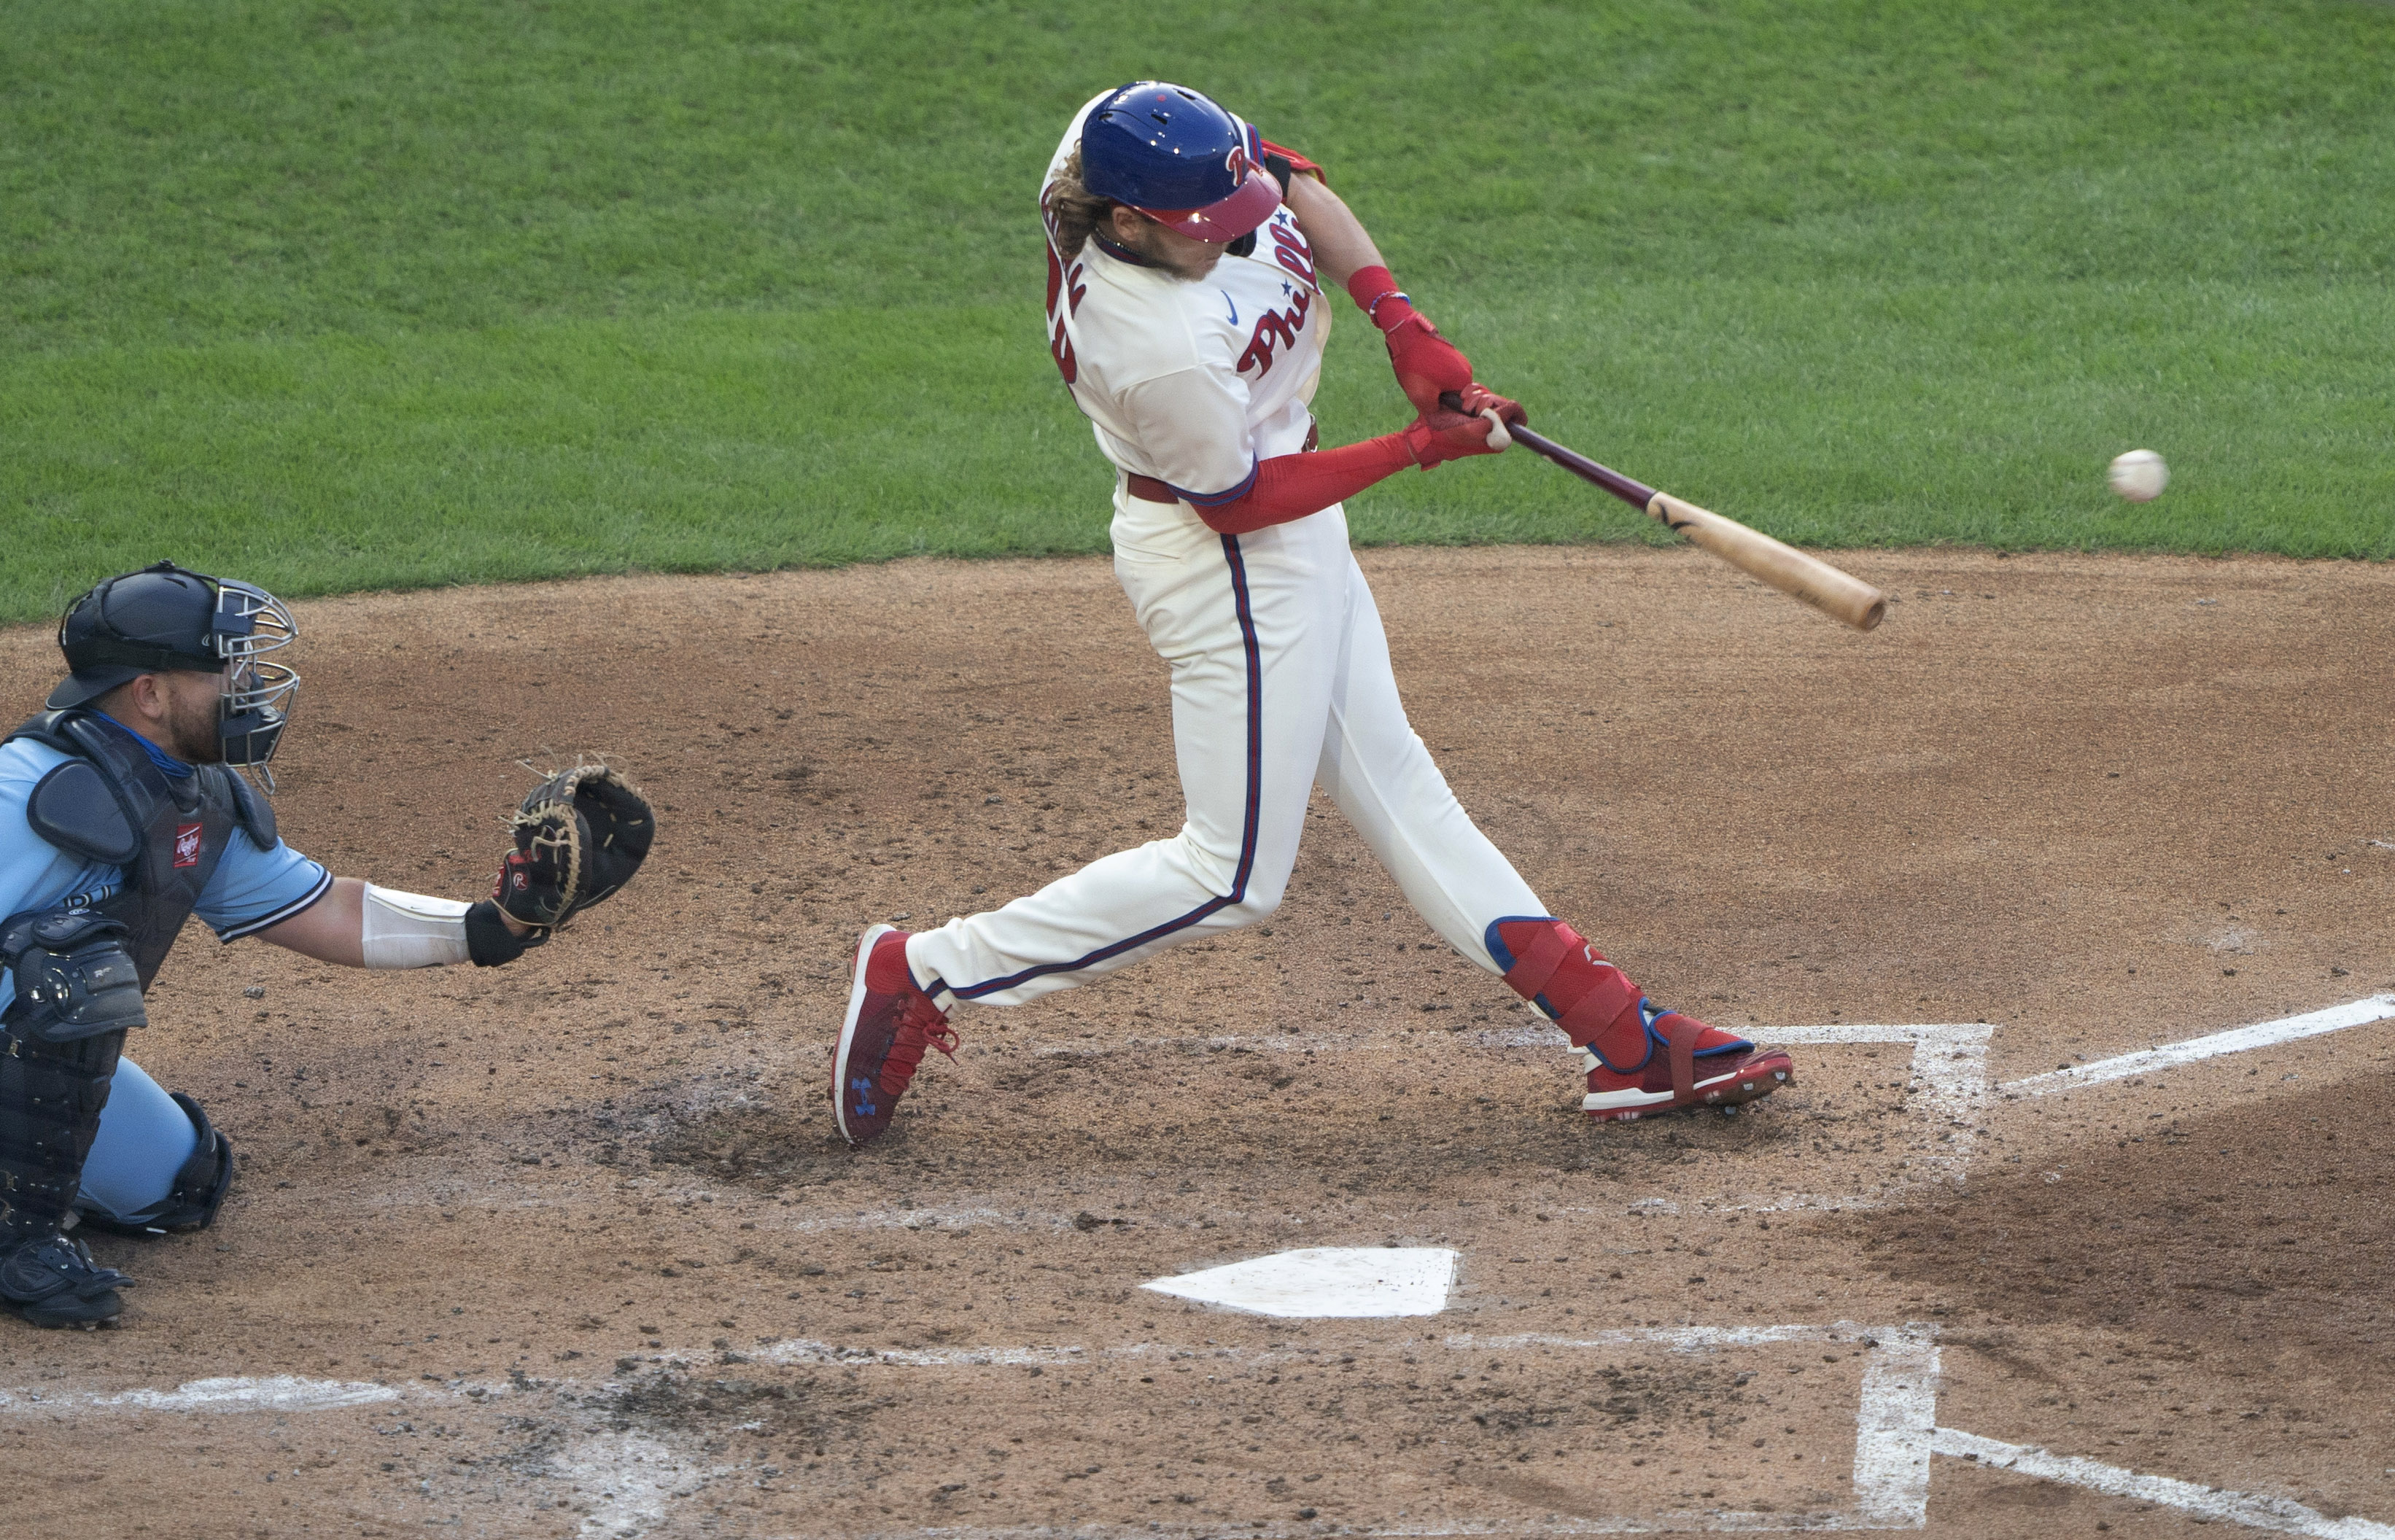 Philadelphia Phillies third baseman Alec Bohm (28) hits a single during the fifth inning against the Toronto Blue Jays at Citizens Bank Park.